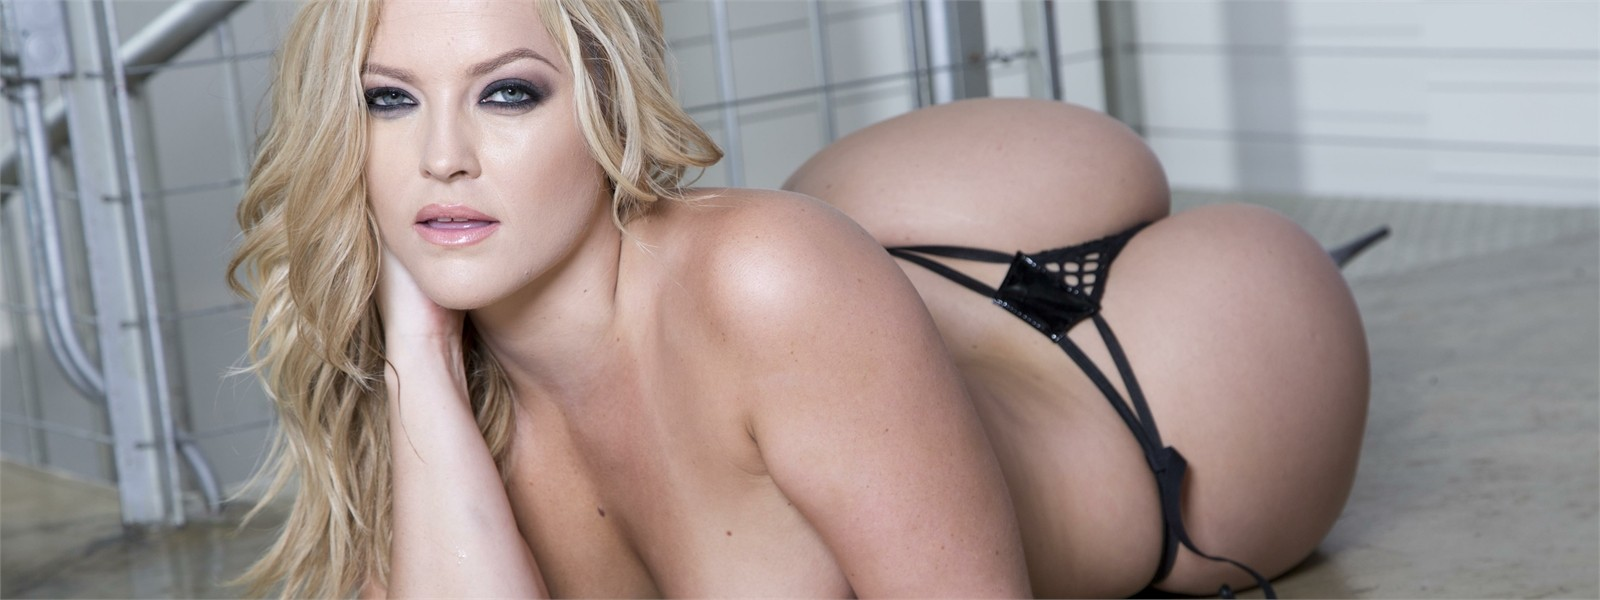 alexis texas pornstar streaming videos, dvds, and more famous porn